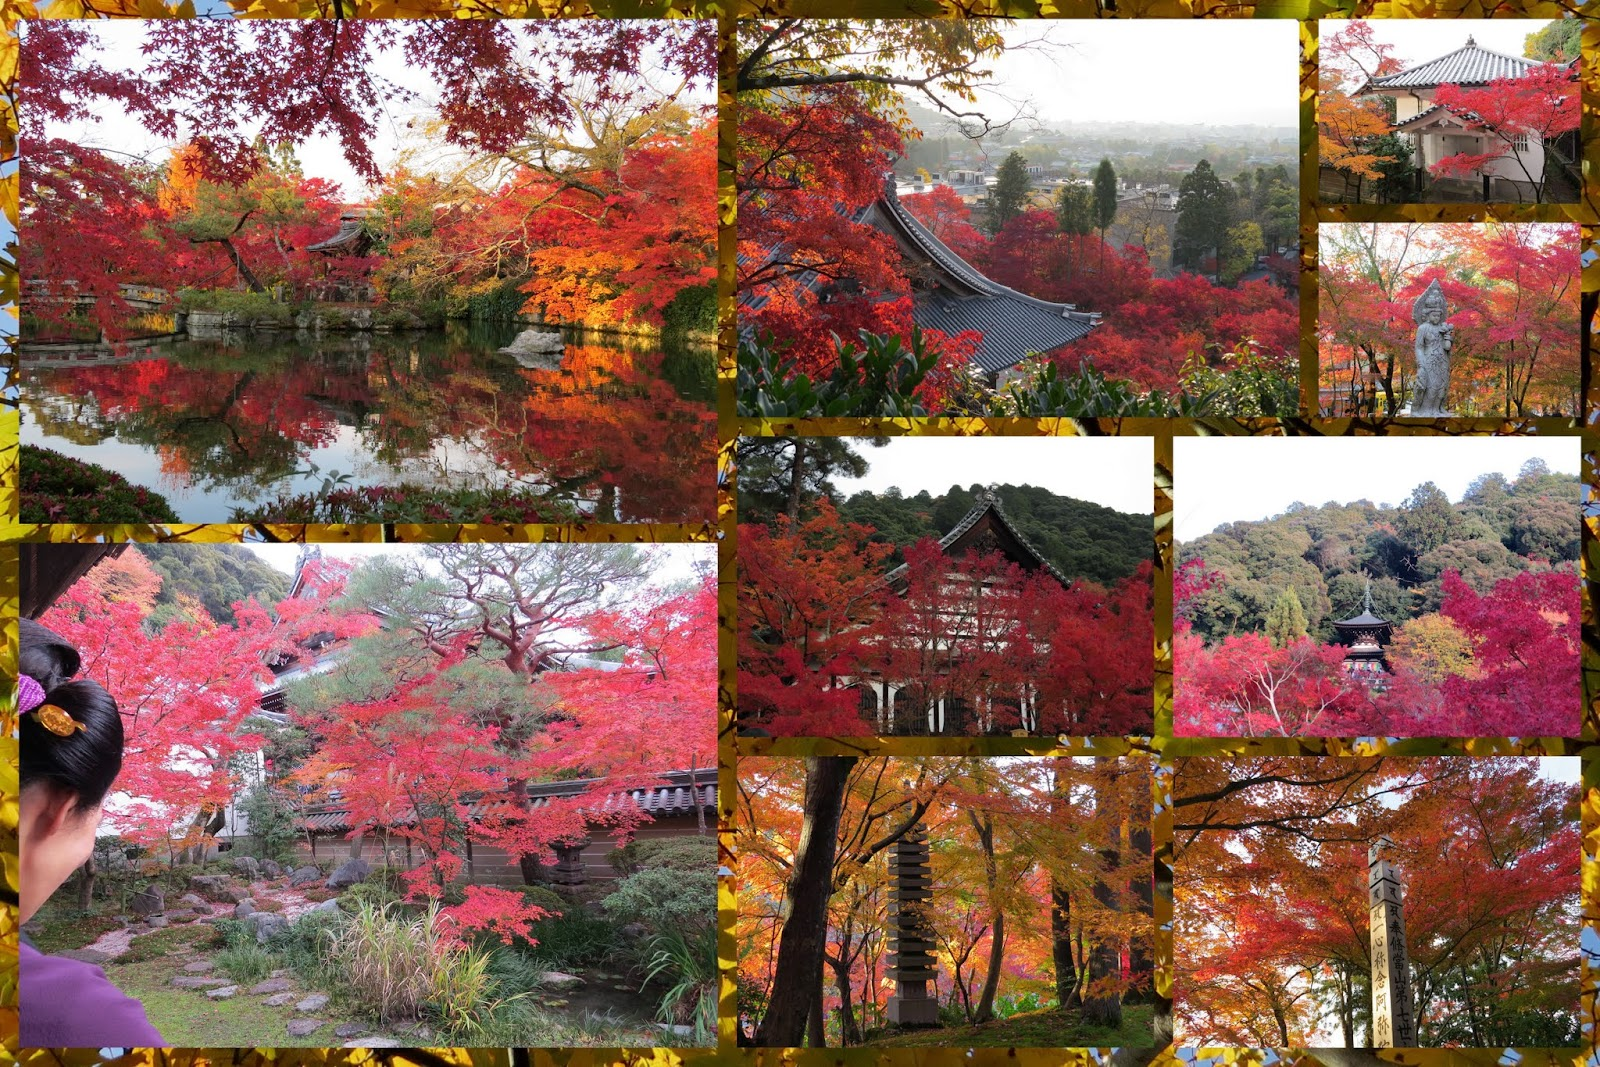 Kyoto, Japan - Autumn Foliage